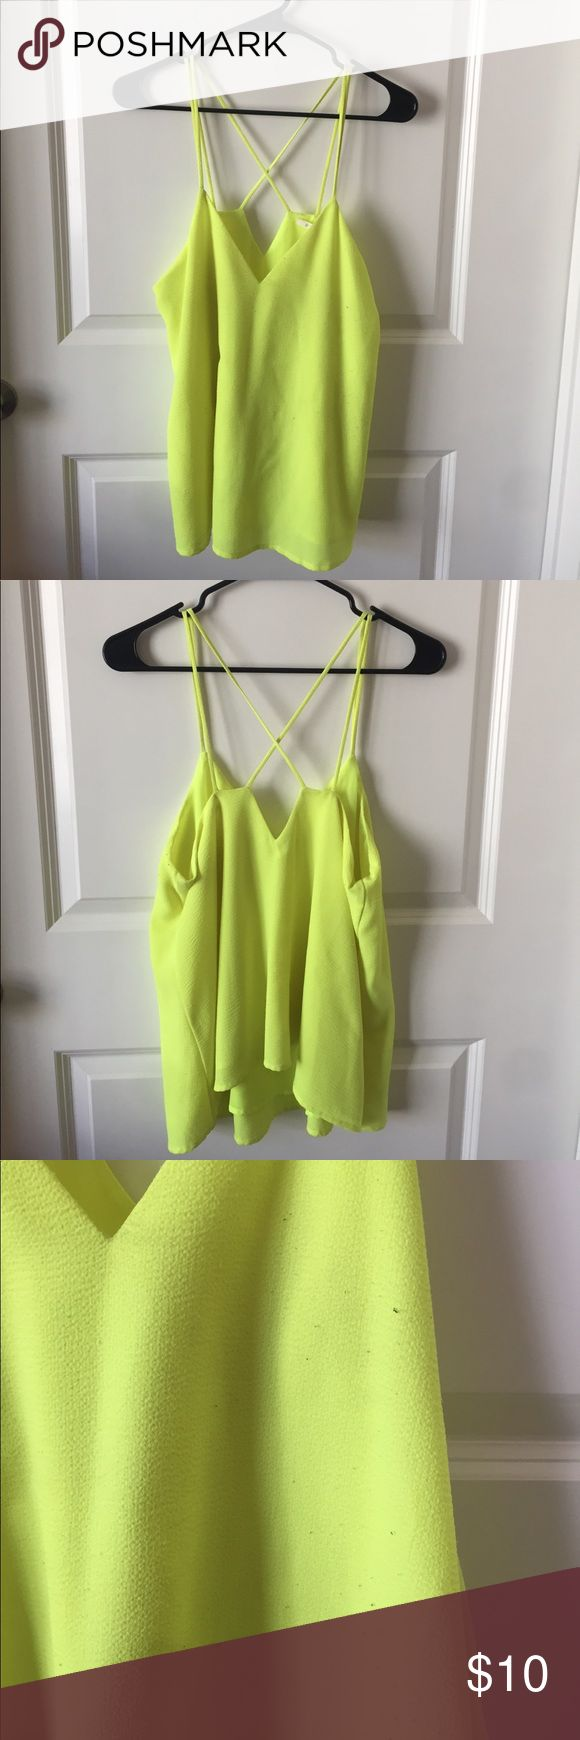 Neon yellow flowy top Neon yellow flowy top, some minor piling (see images) hypr Tops Blouses